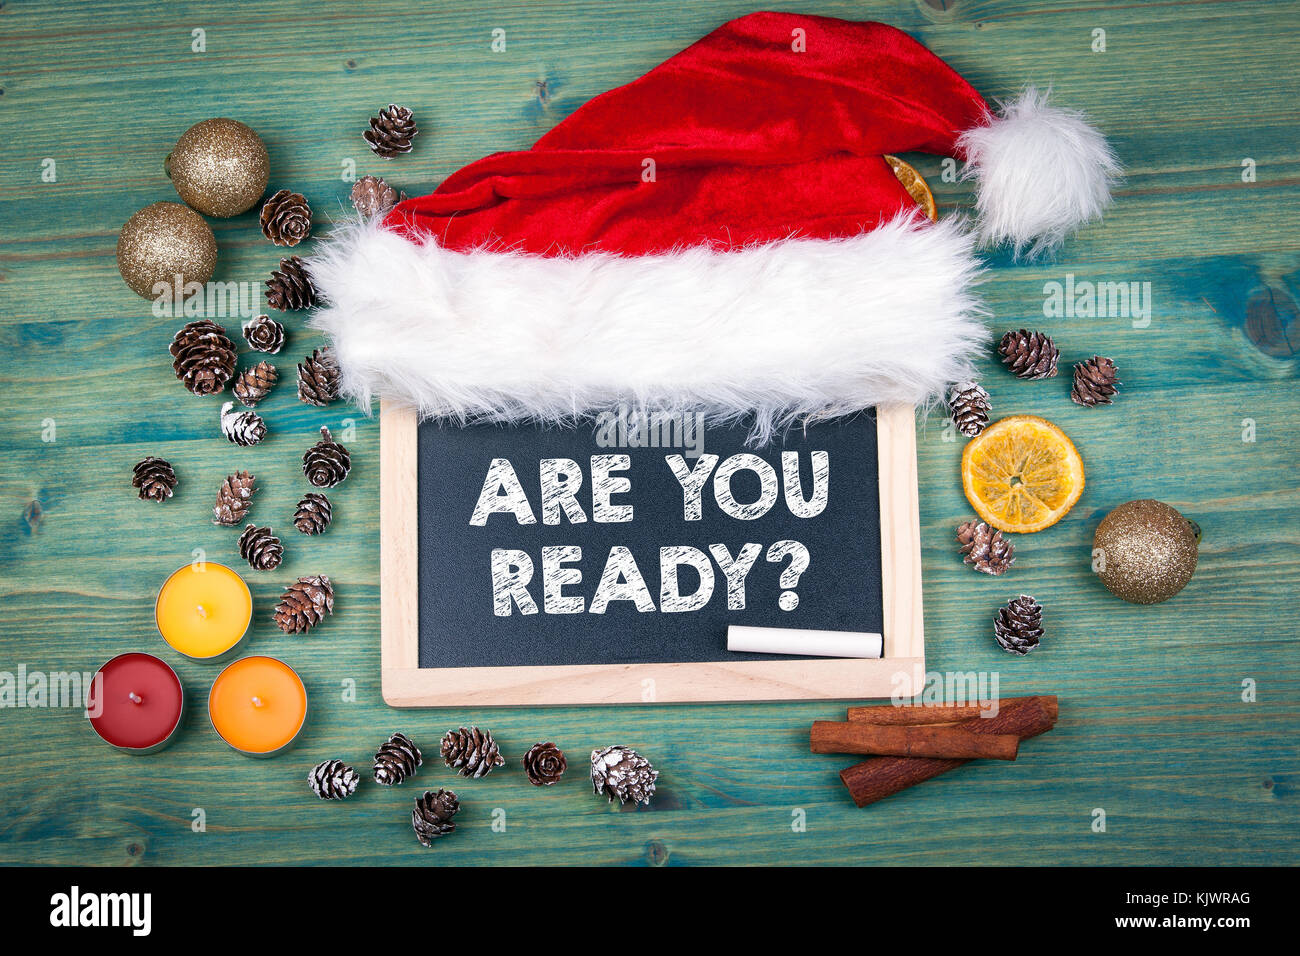 Are You Ready. Christmas and holiday background. Ornaments and decor on a wooden table - Stock Image